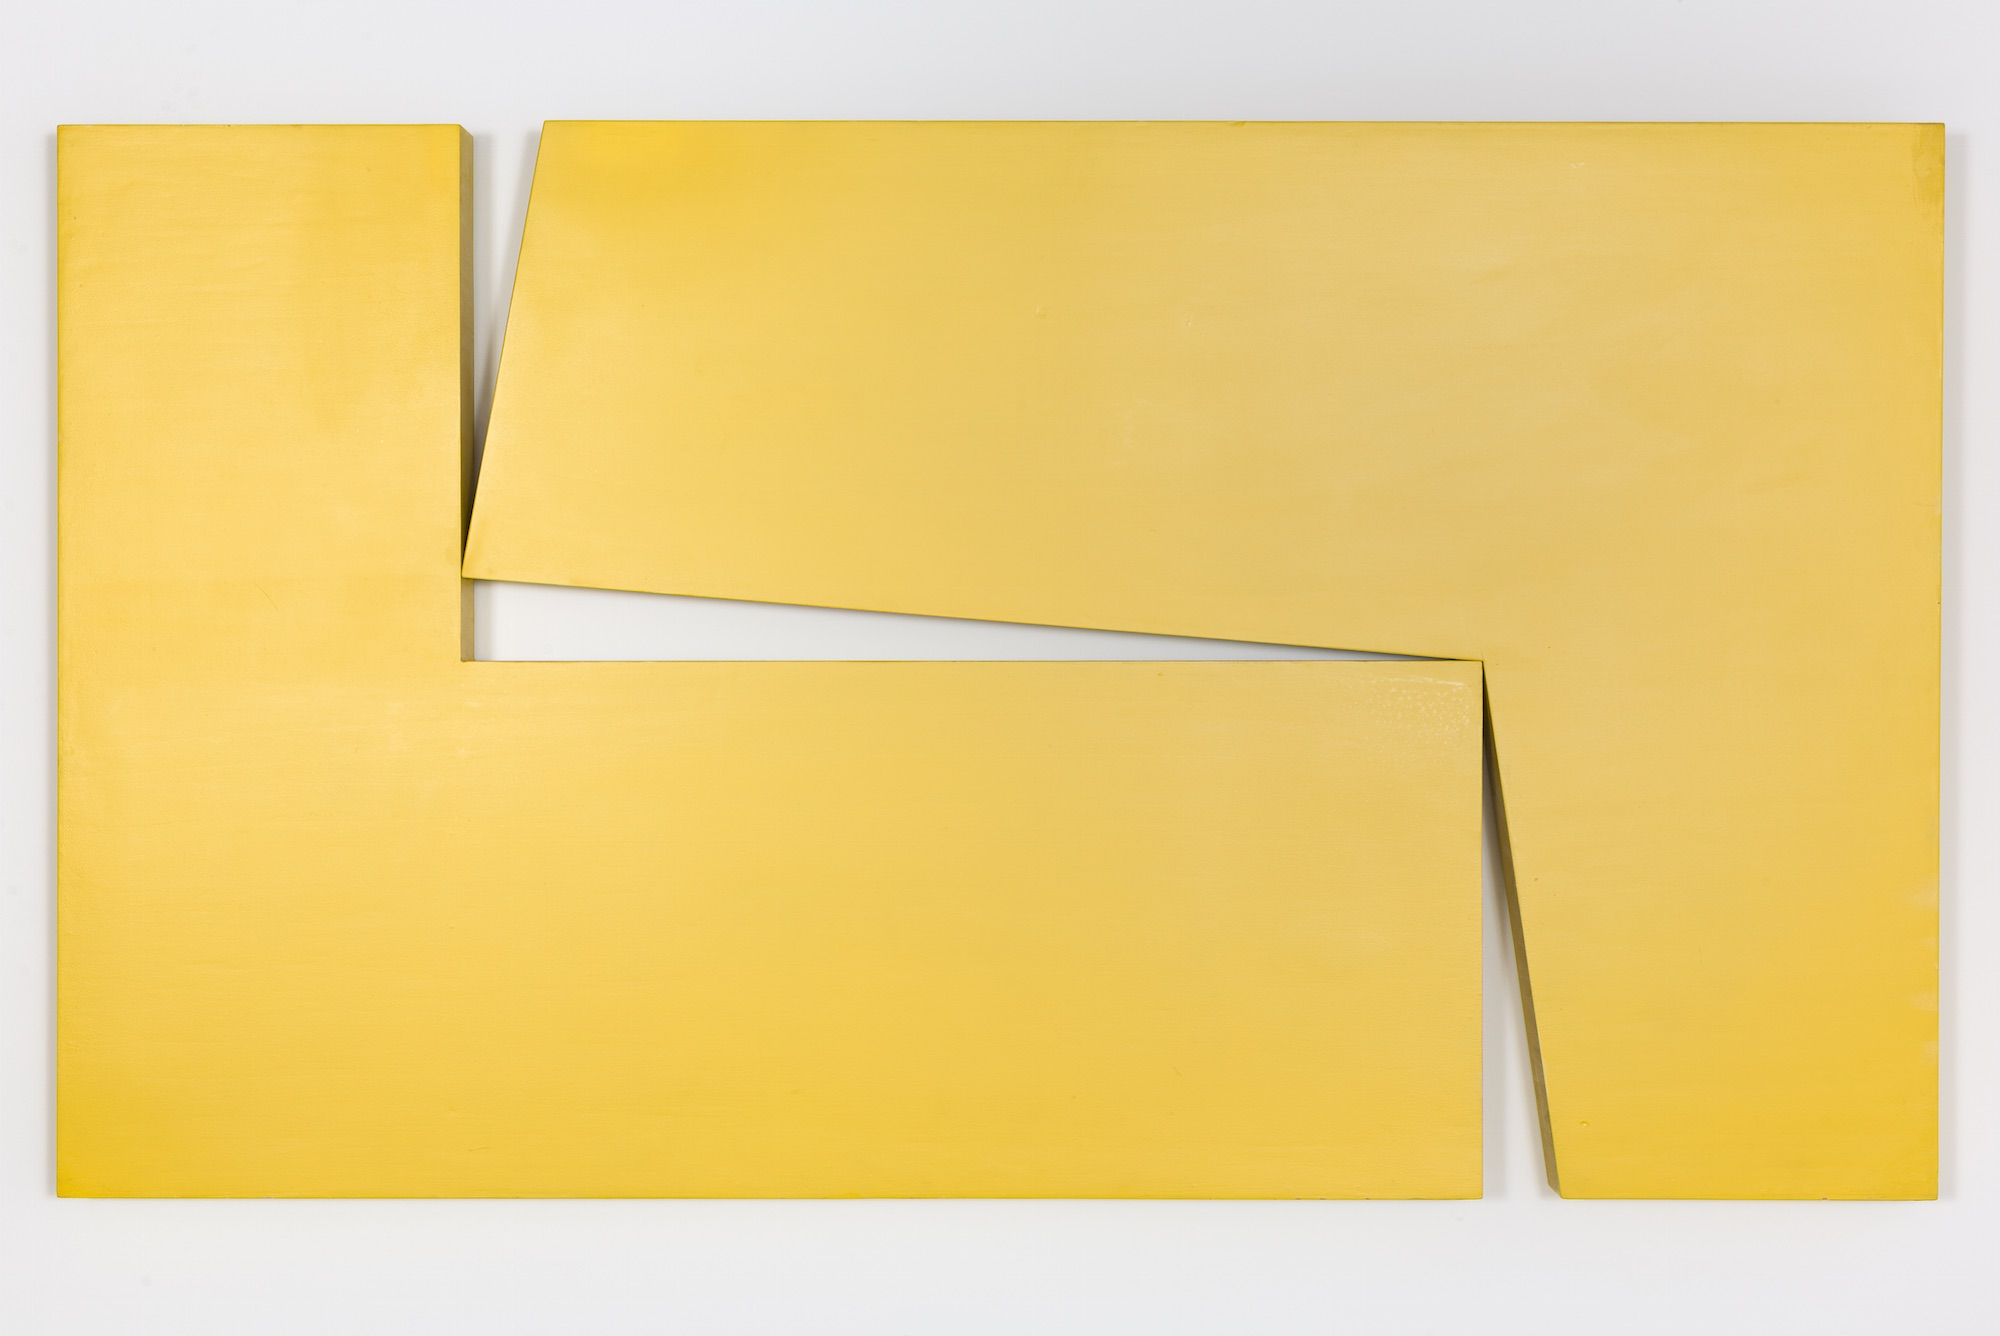 "Carmen Herrera, Amarillo ""Dos"", 1971. Acrylic on wood, 40 x 70 x 3 1/4 in. (101.6 x 177.8 x 8.3 cm). Maria Graciela and Luis Alfonso Oberto Collection © Carmen Herrera"